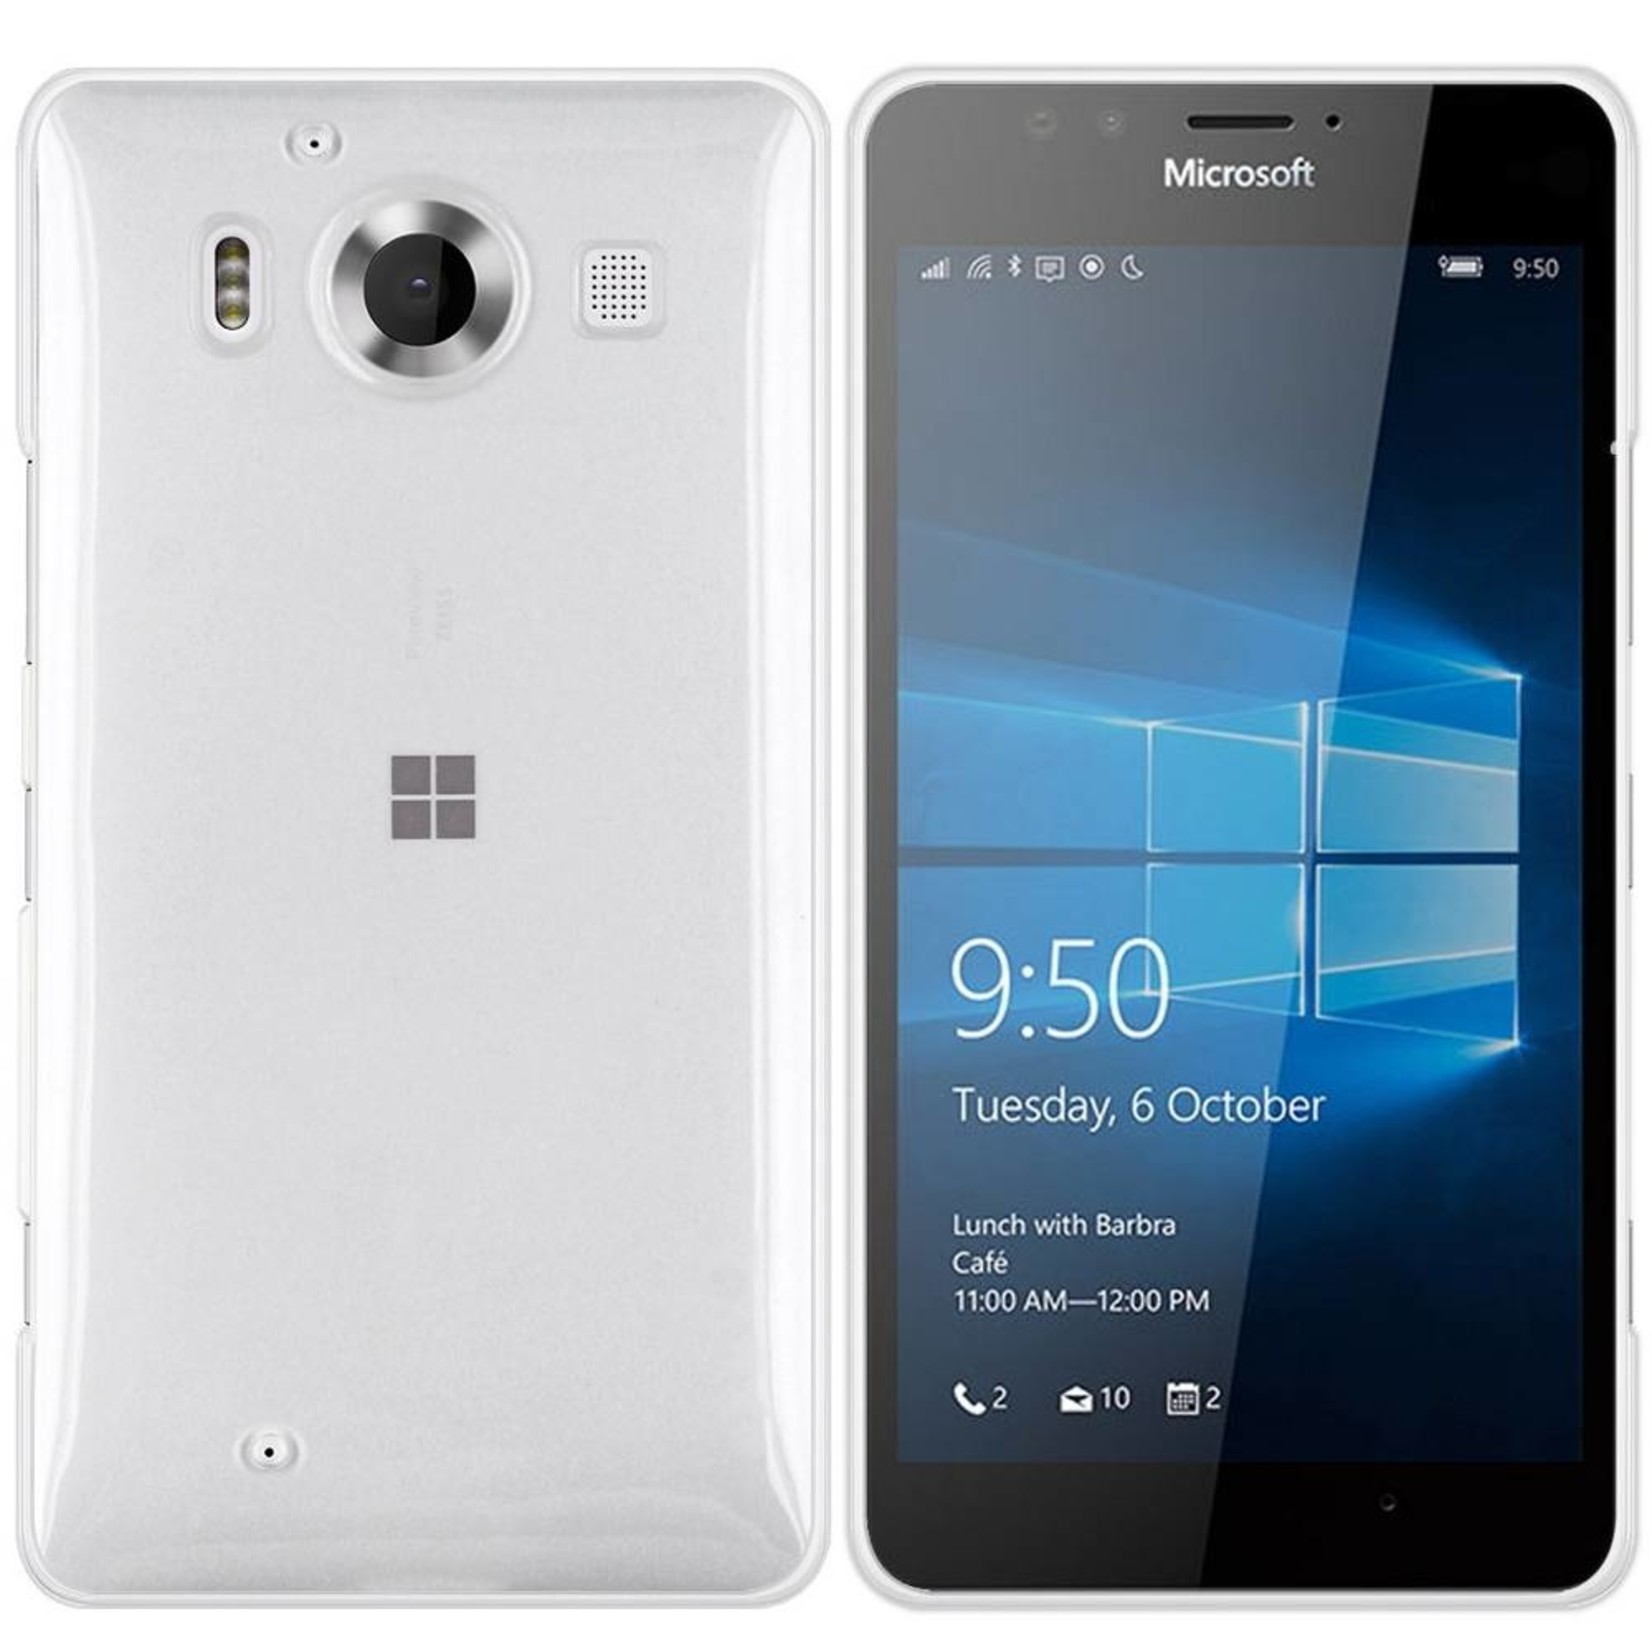 Colorfone Hoesje CoolSkin3T voor Microsoft Lumia 950 Tr. Wit